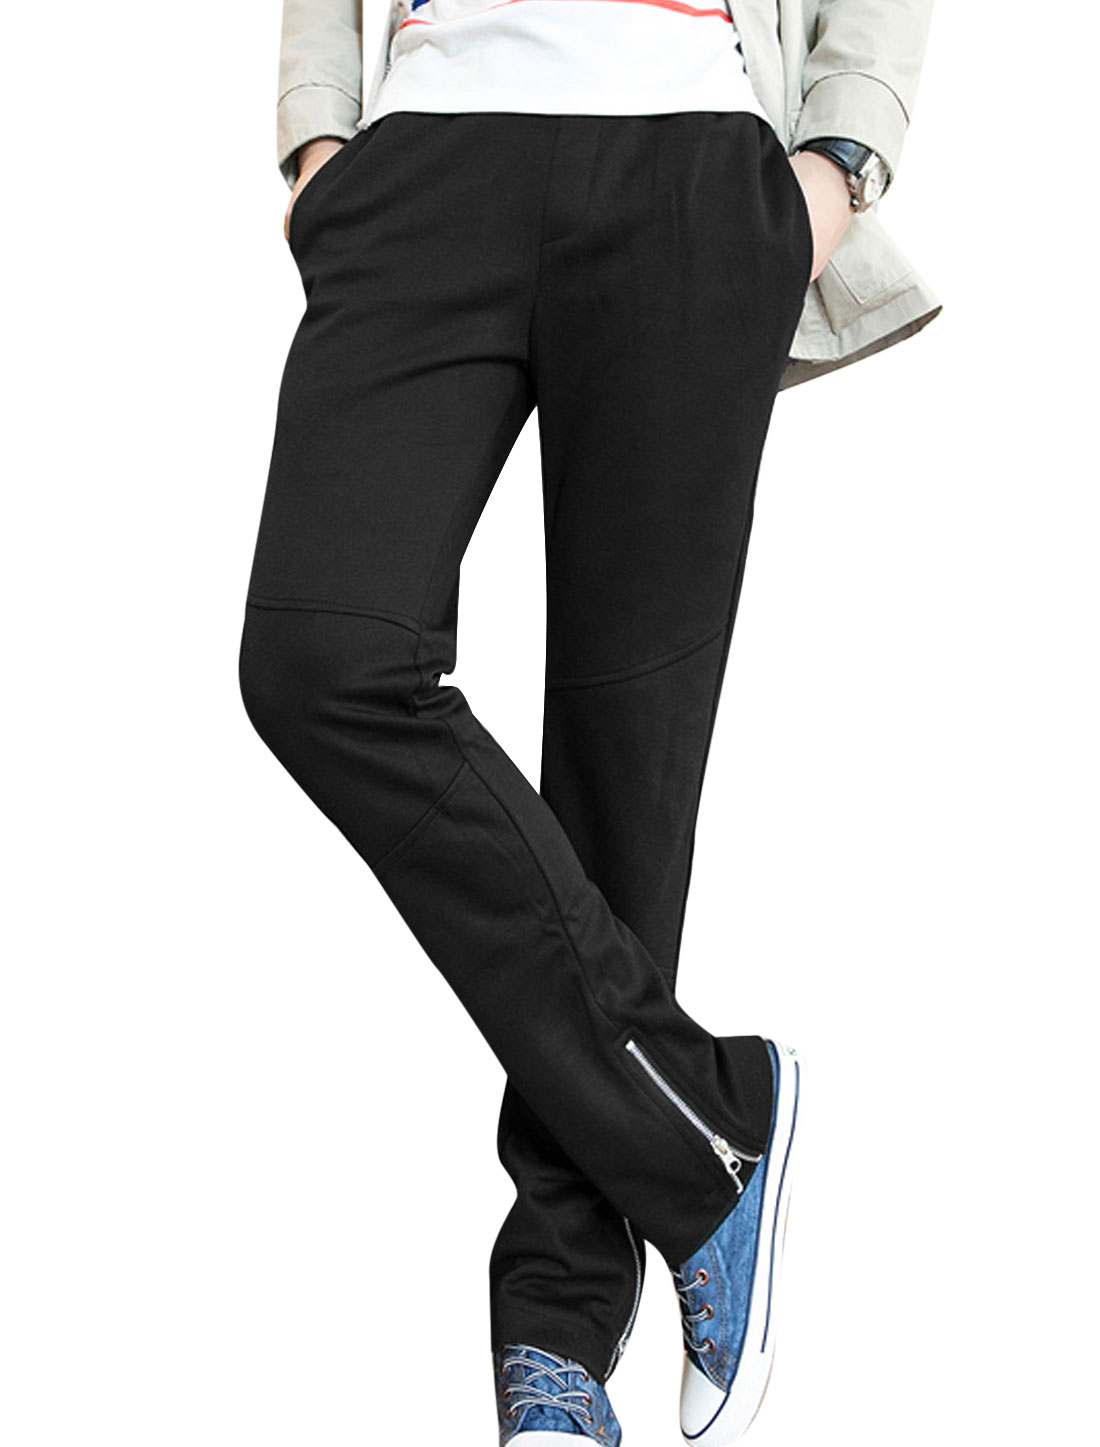 Man Elastic Waist Front Pockets Zipper Embellished Sport Pants Black W30